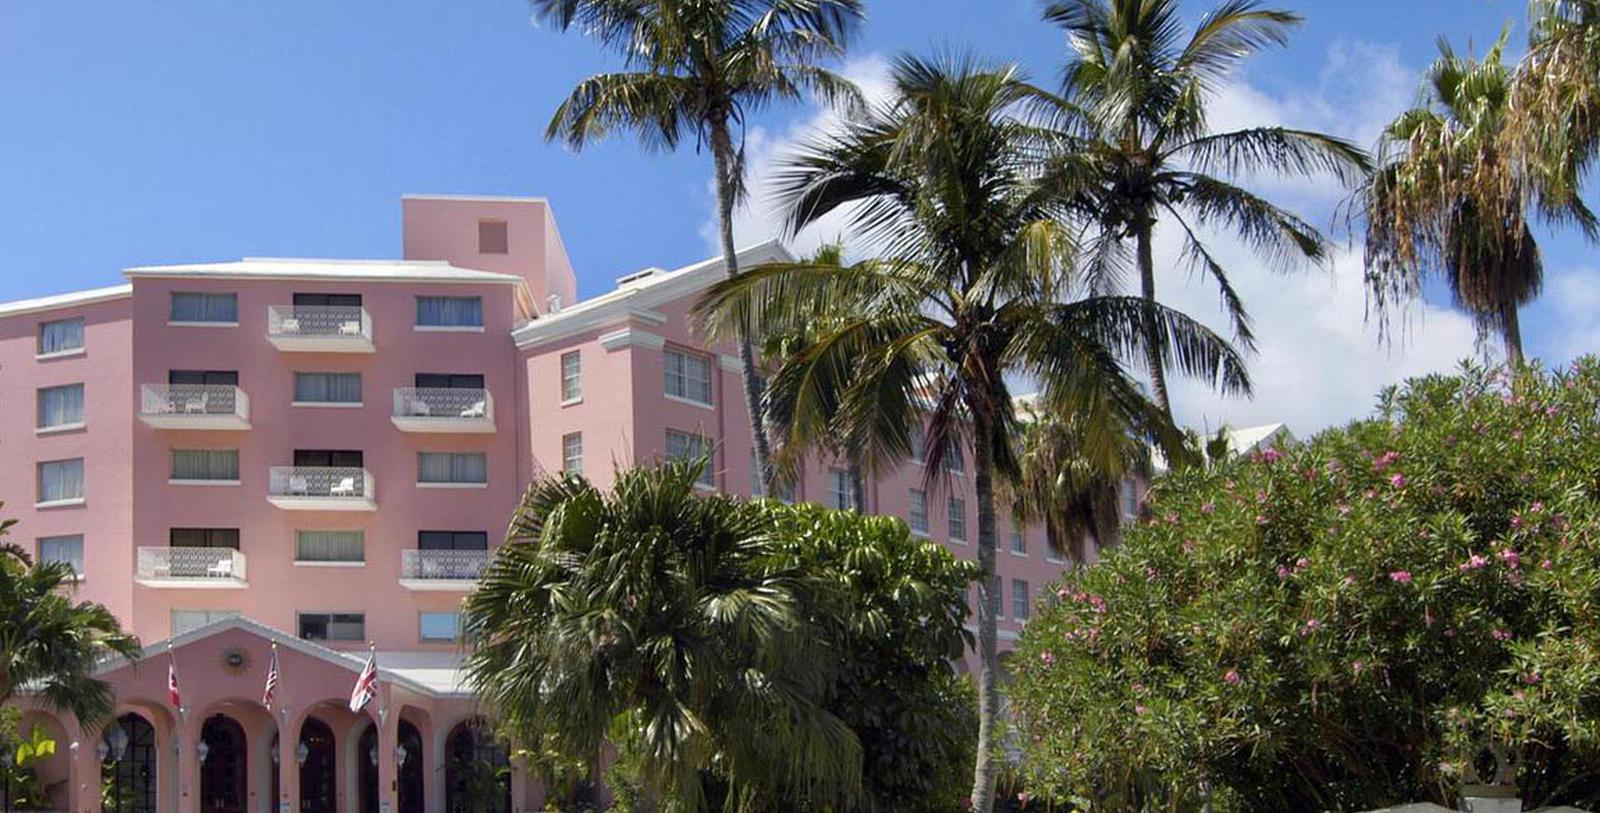 Image of exterior of the Hamilton Princess & Beach Club, A Fairmont Managed Hotel in Bermuda.